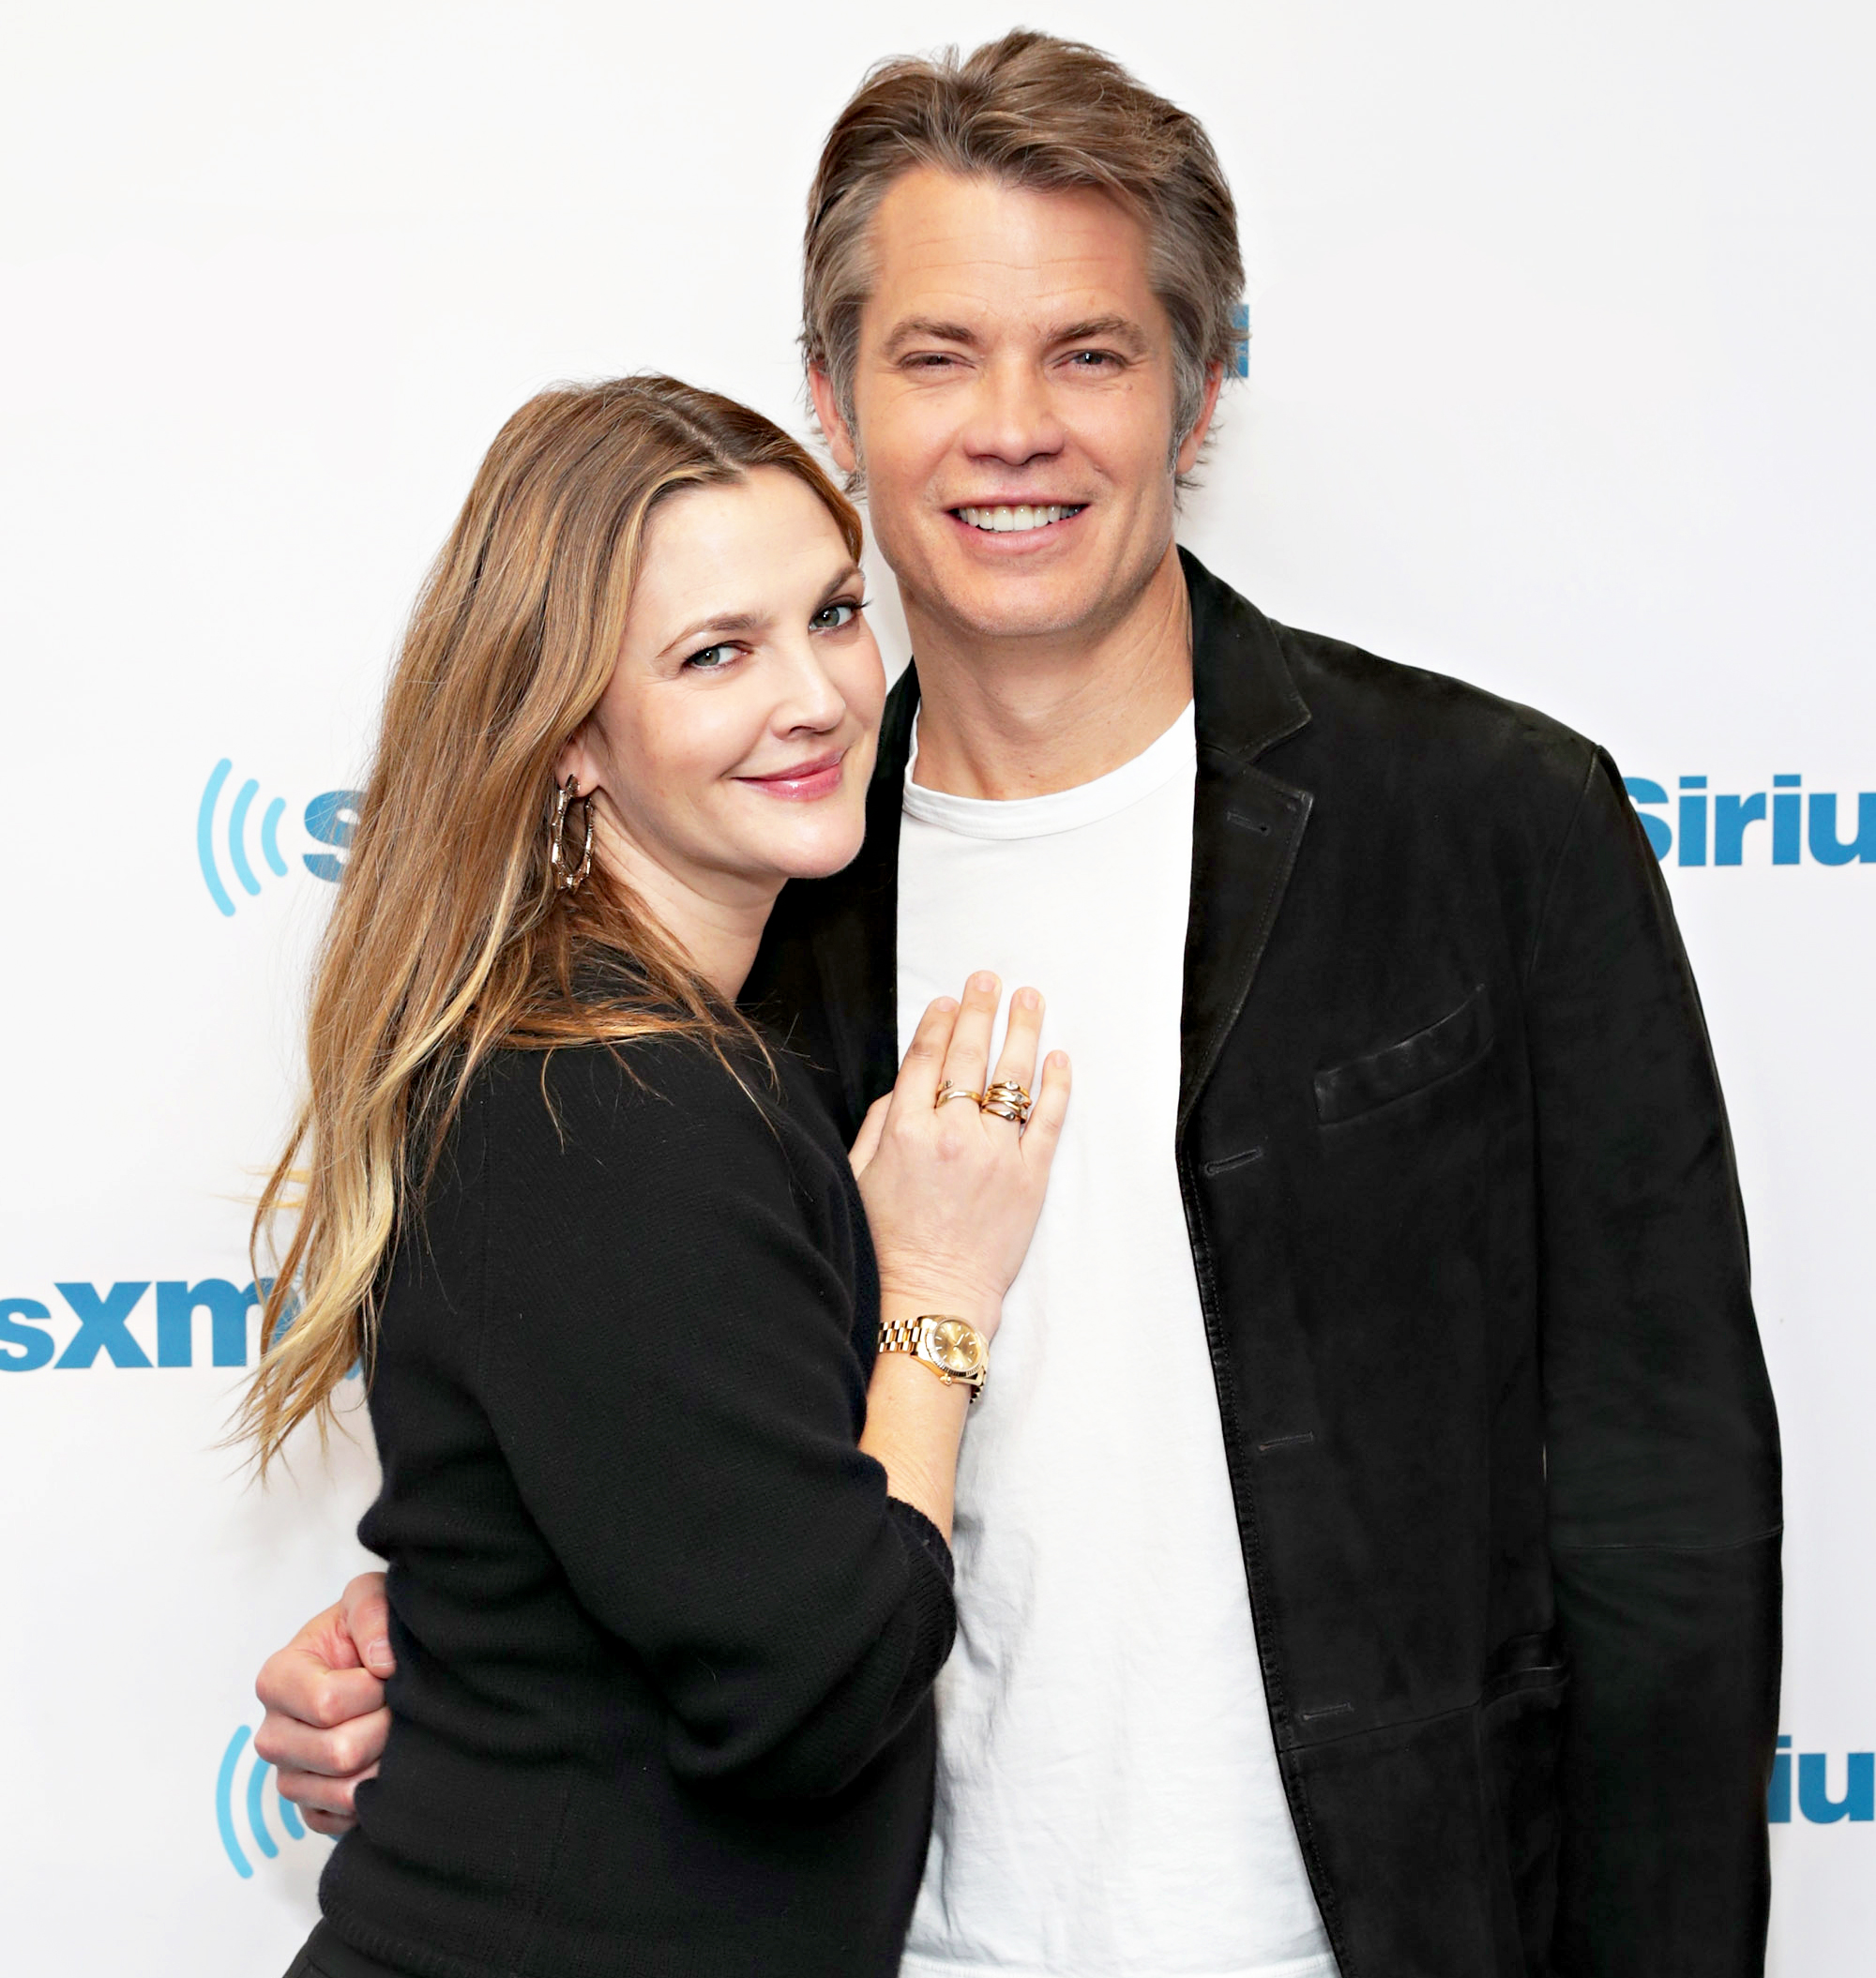 The personal life of Timothy Olyphanth